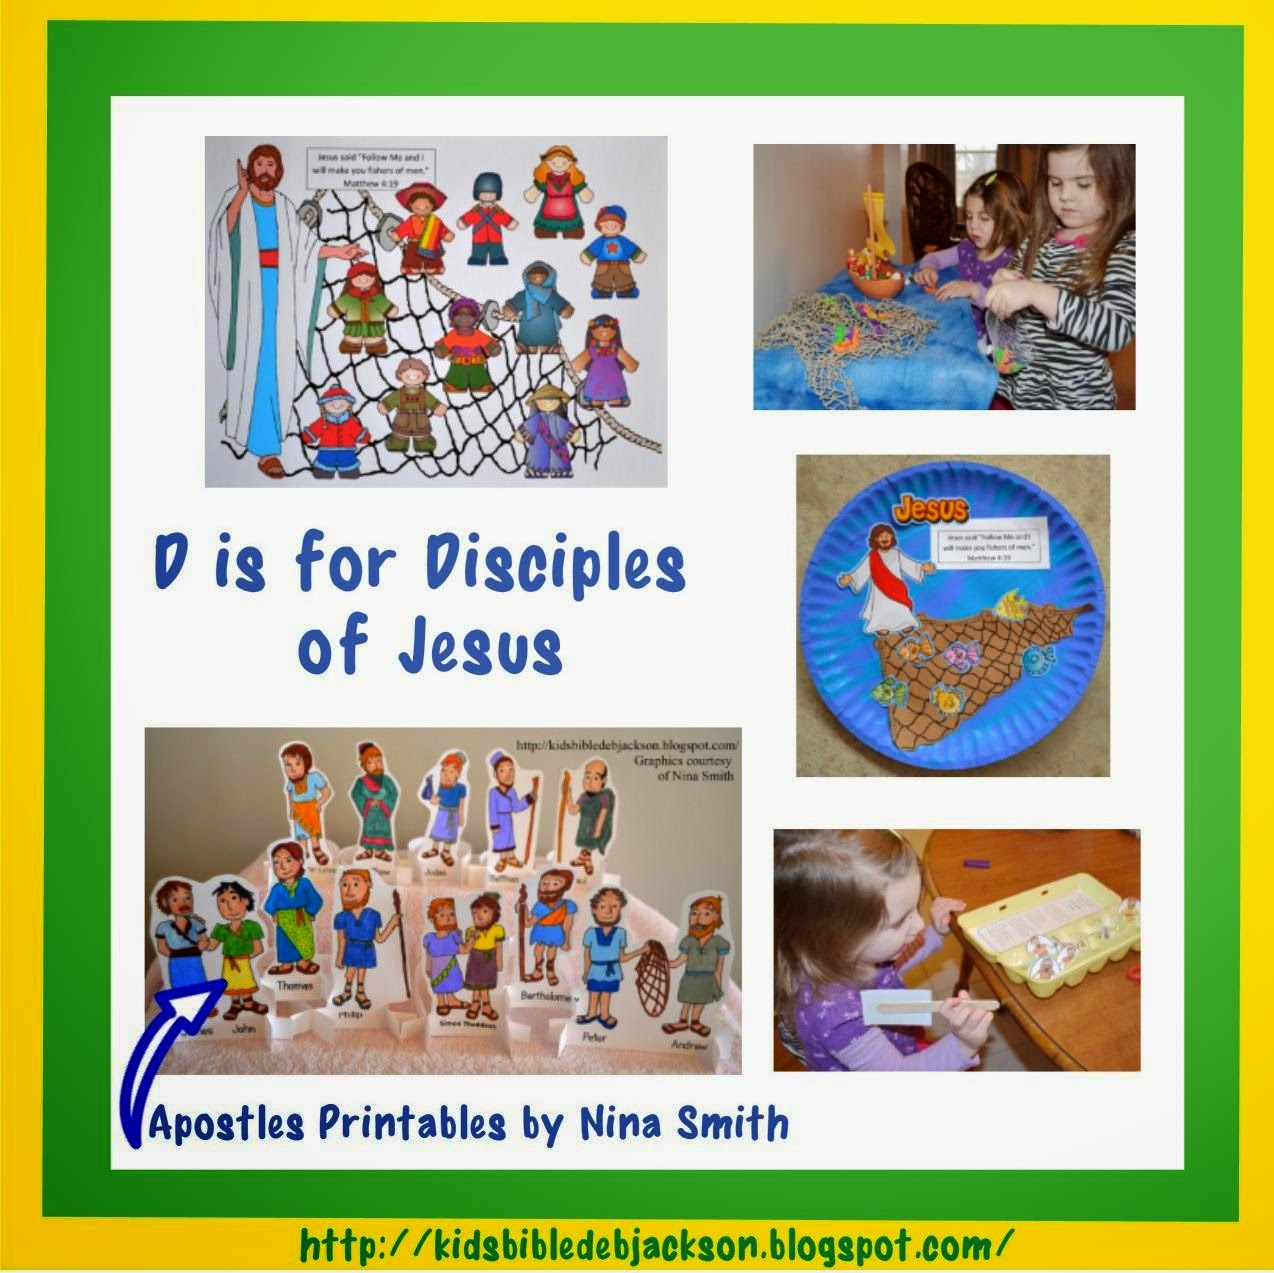 http://kidsbibledebjackson.blogspot.com/2014/03/preschool-alphabet-d-is-for-disciples.html